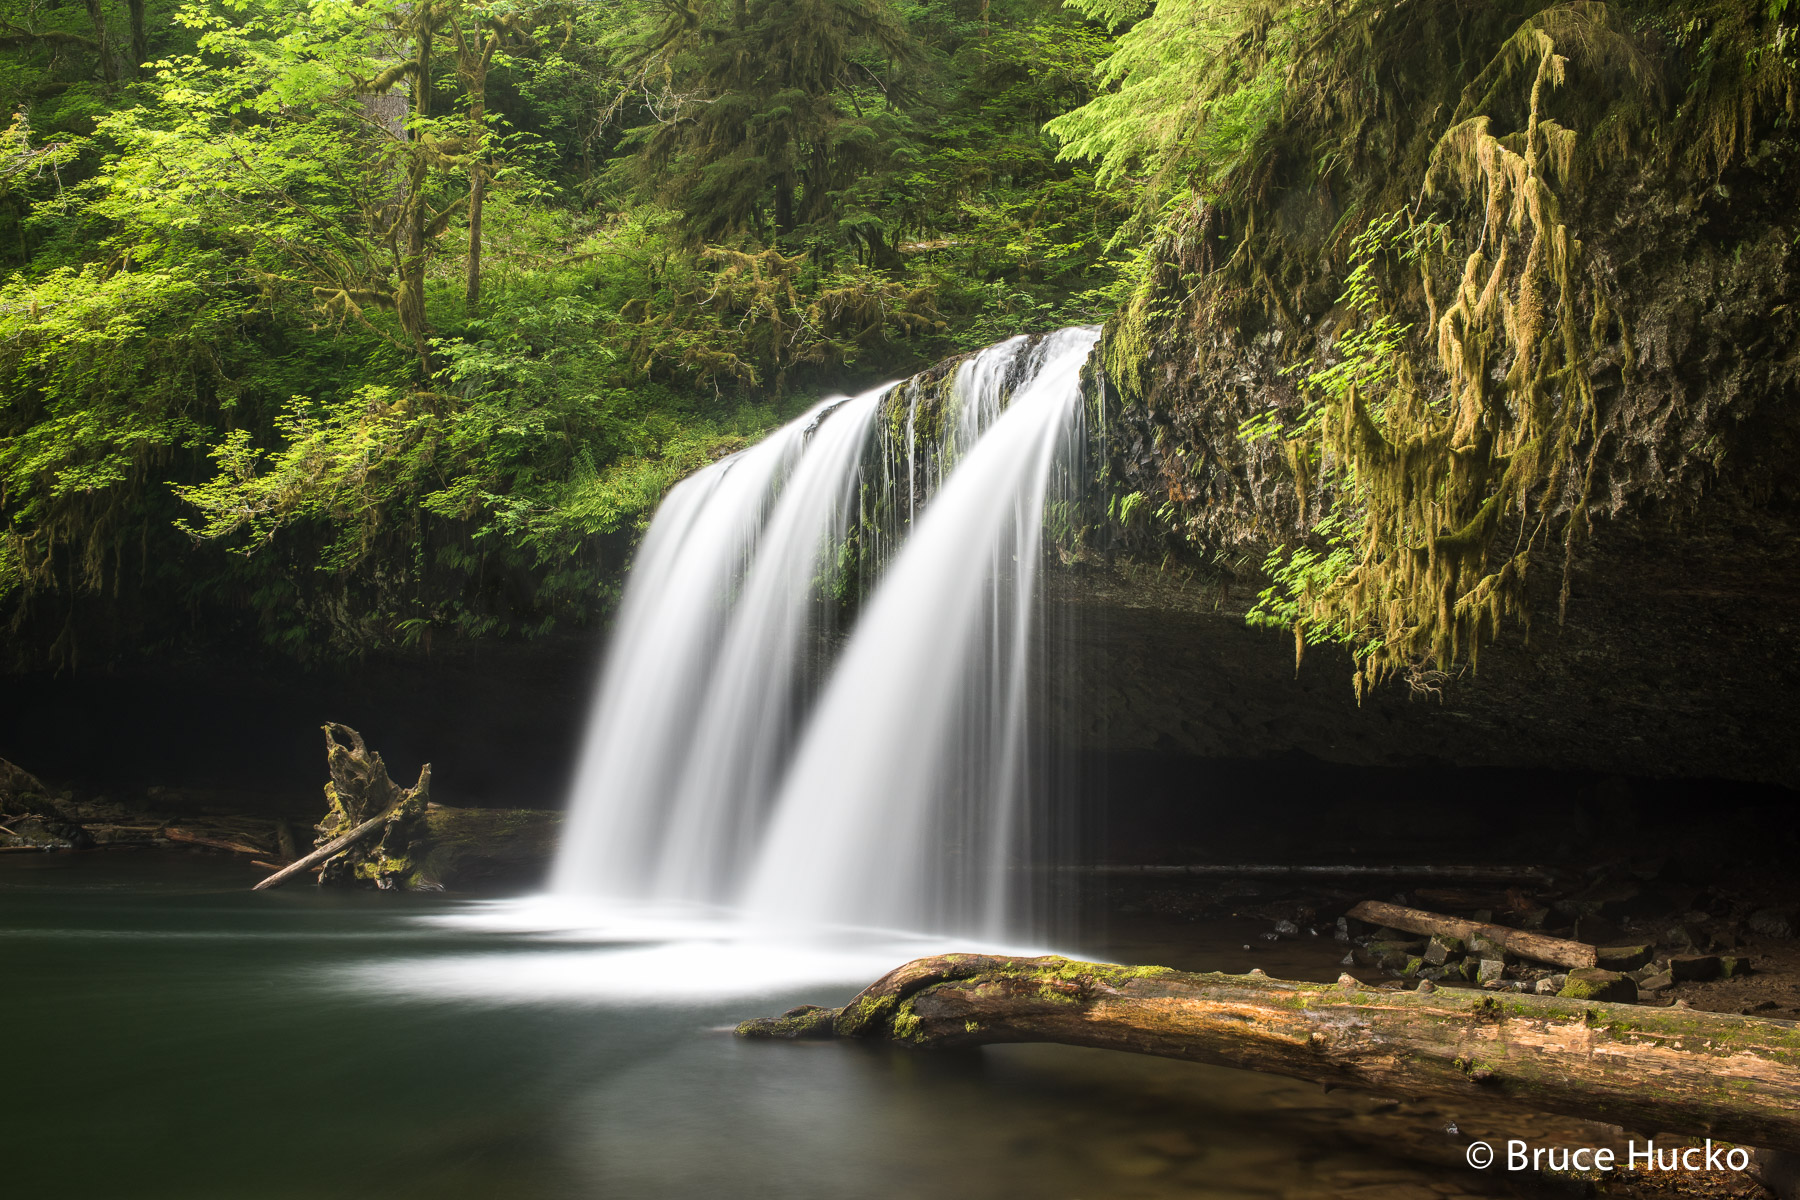 Butte Falls, Butte Falls Oregon, Fishermen's Bend Area, Oregon Coast, Oregon Waterfalls, road trip 2016, photo